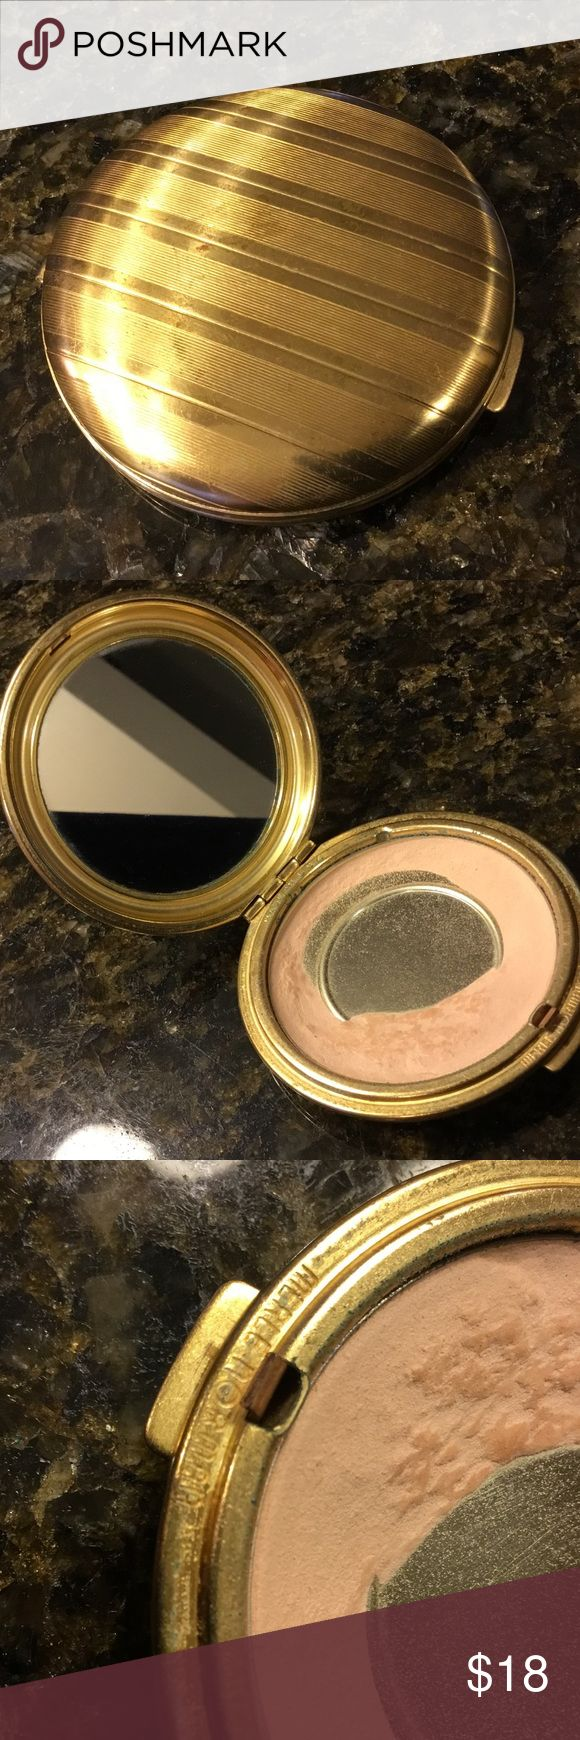 Vintage Gold Tone Compact with Mirror Vintage Merle Norman pressed powder compact with mirror. Used condition, shows age and wear. Mirror in good condition. Merle Norman Makeup